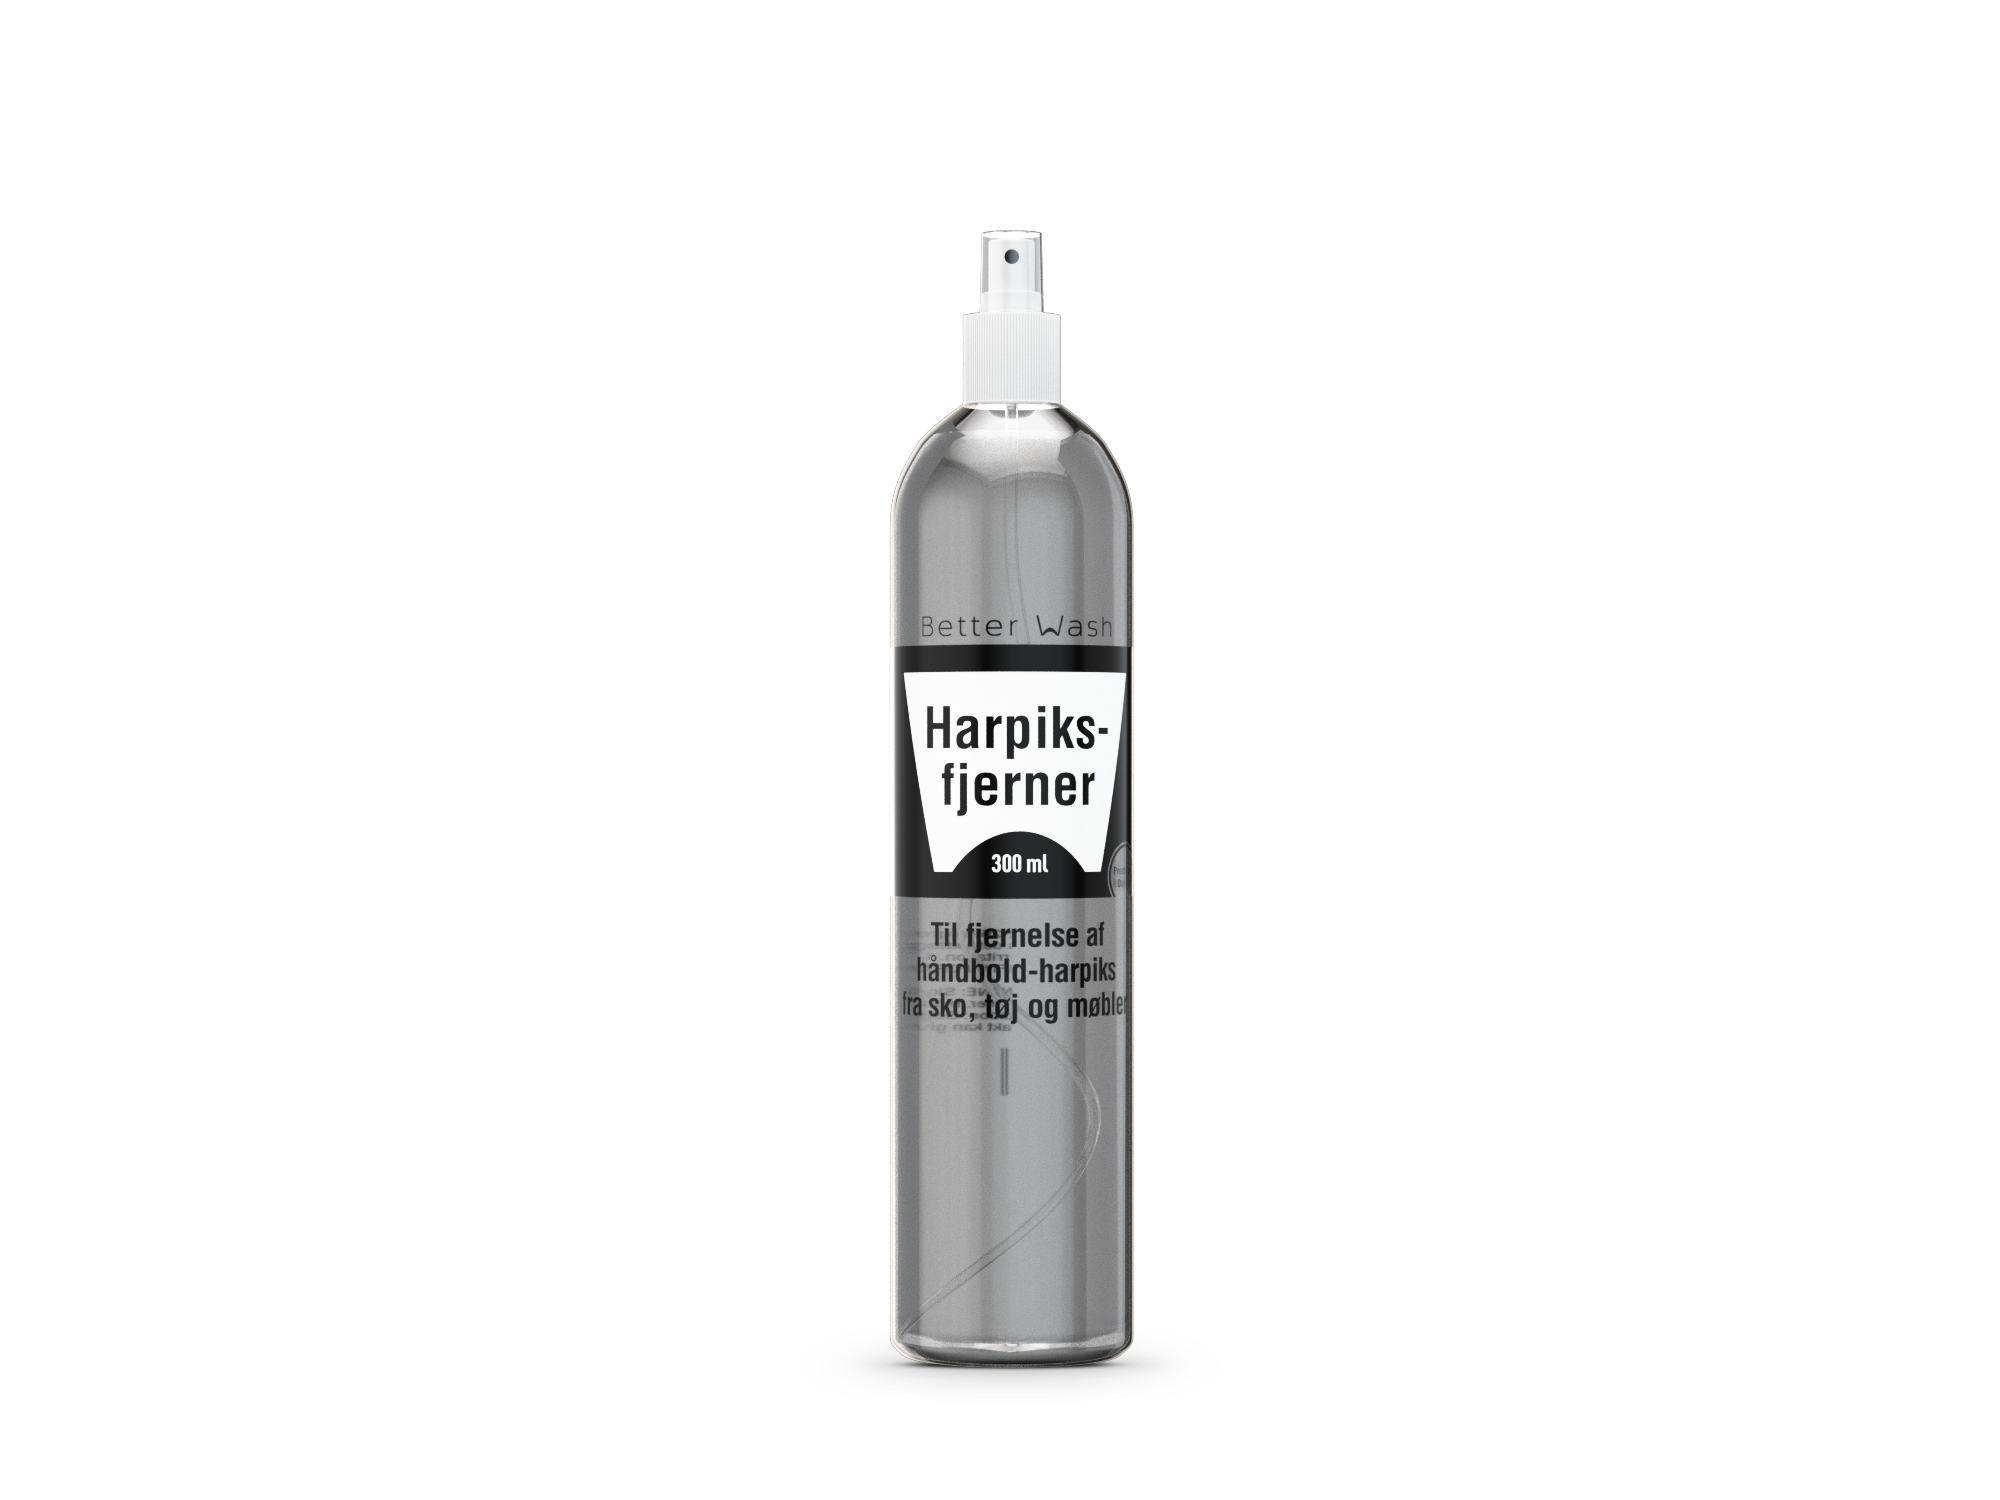 Better Wash Harpiksfjerner 300 ml